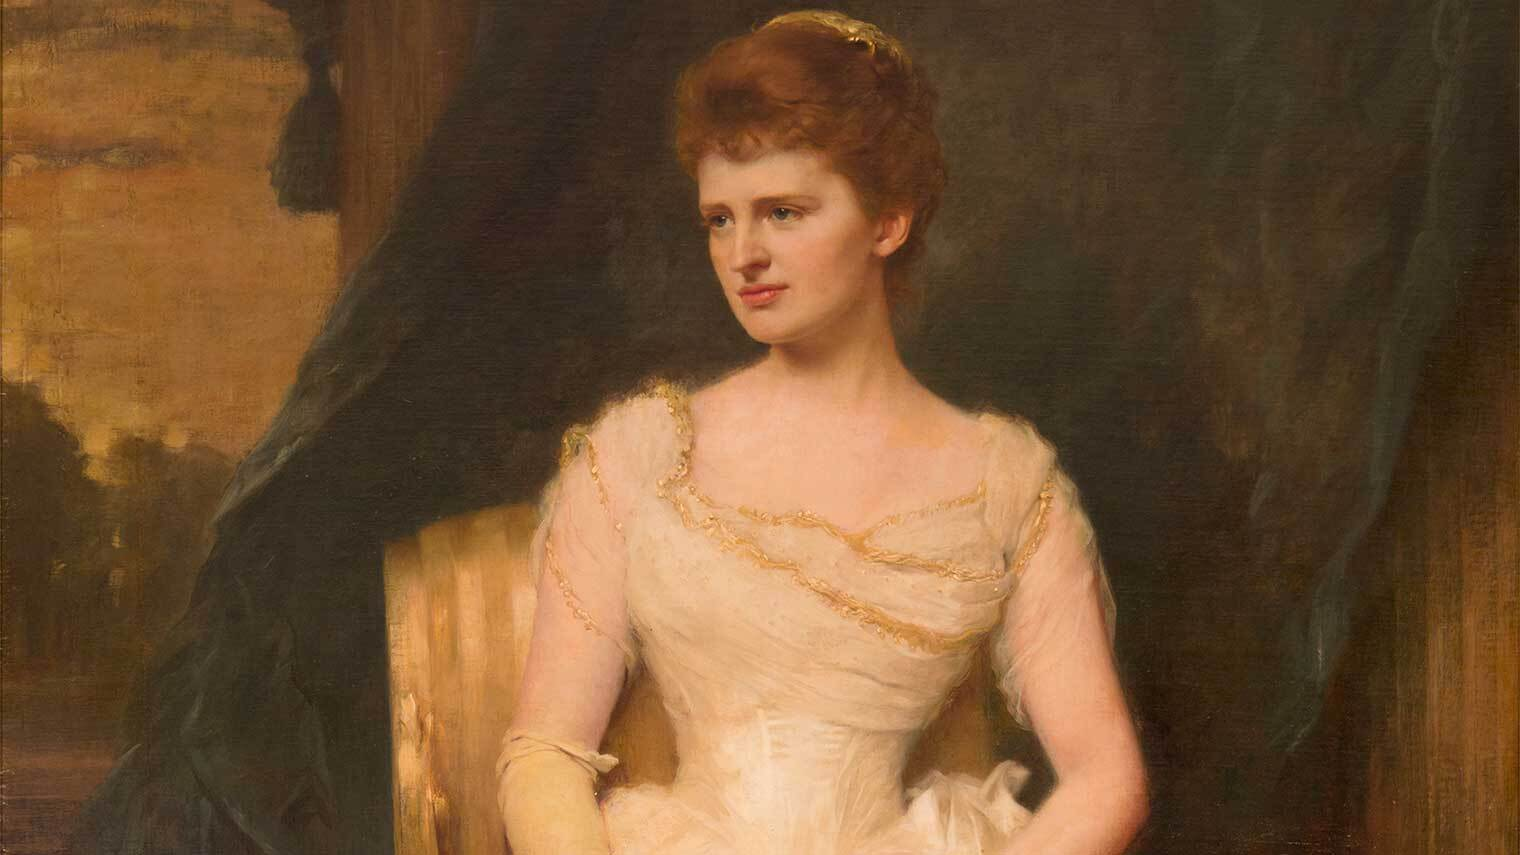 A well-dressed woman poses for a painting in an elegant off-white ballgown